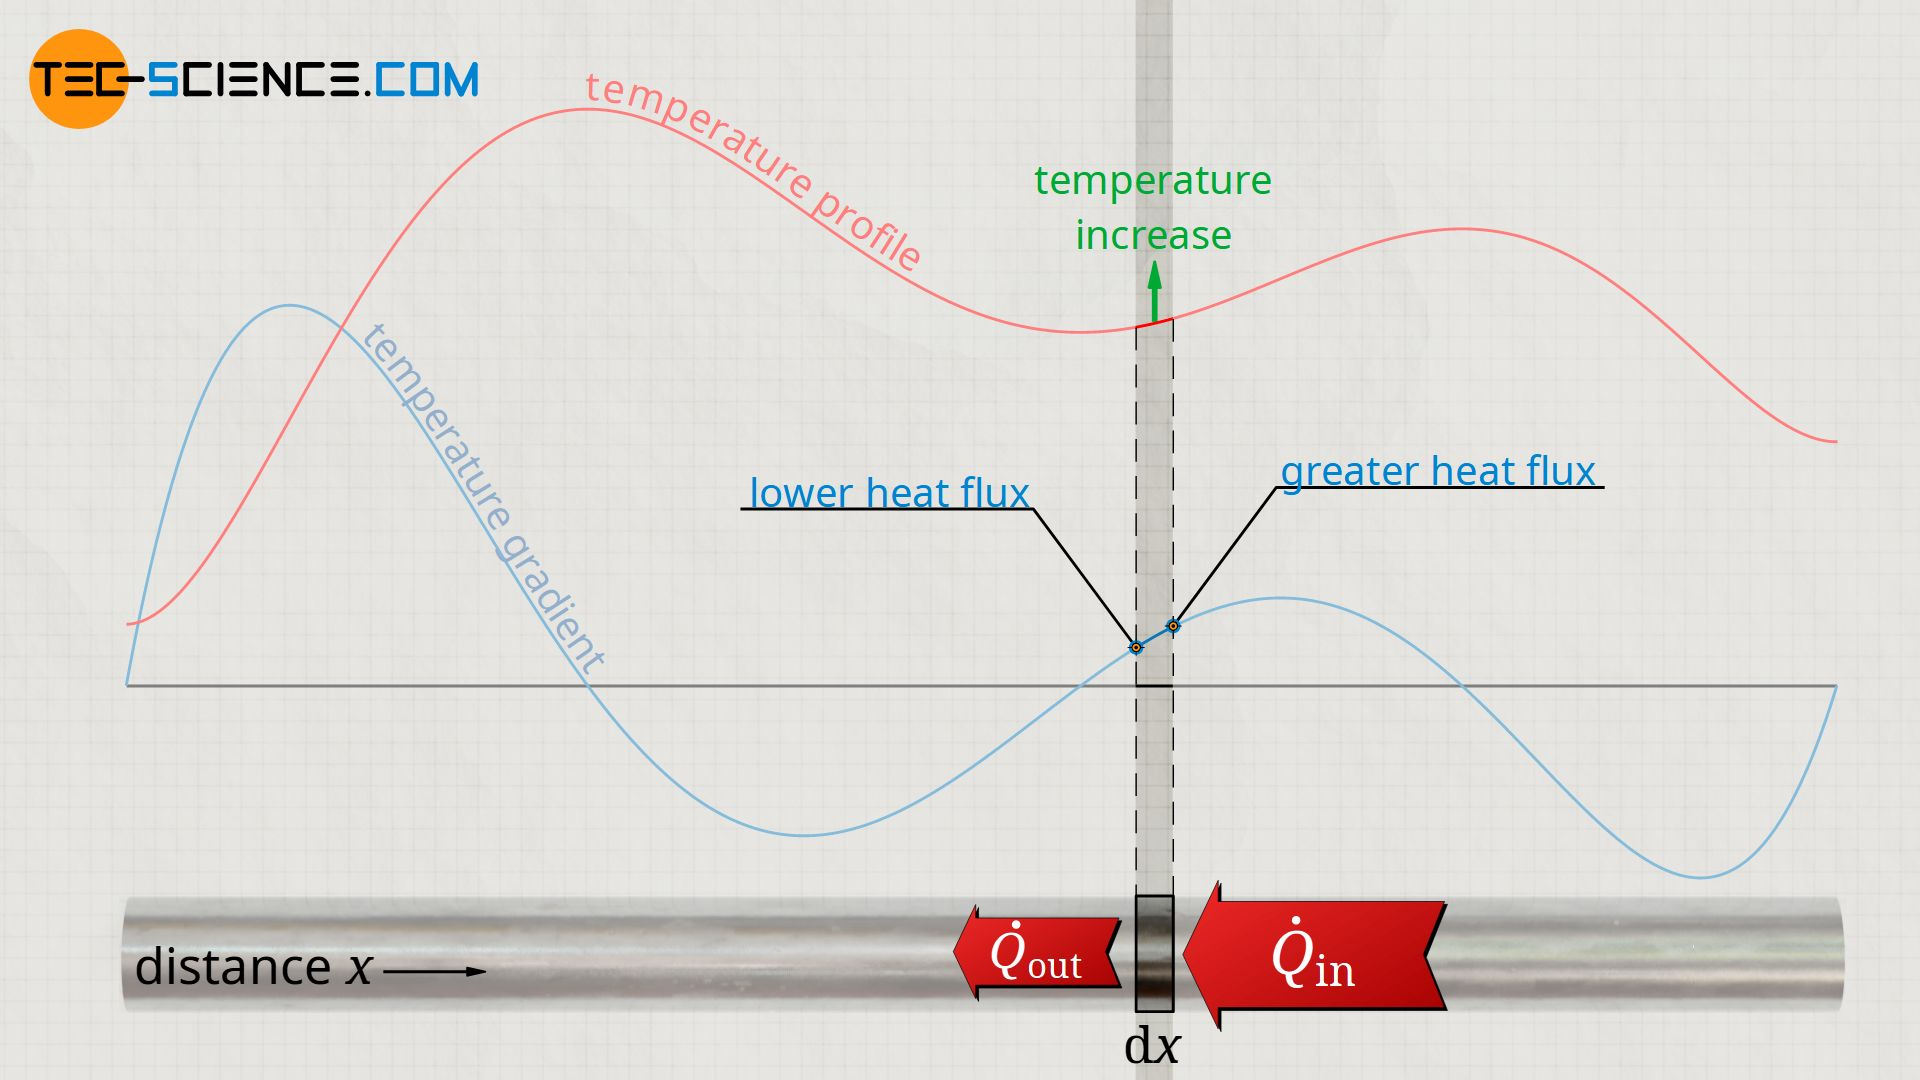 Increase in temperature due to an increase in the temperature gradient